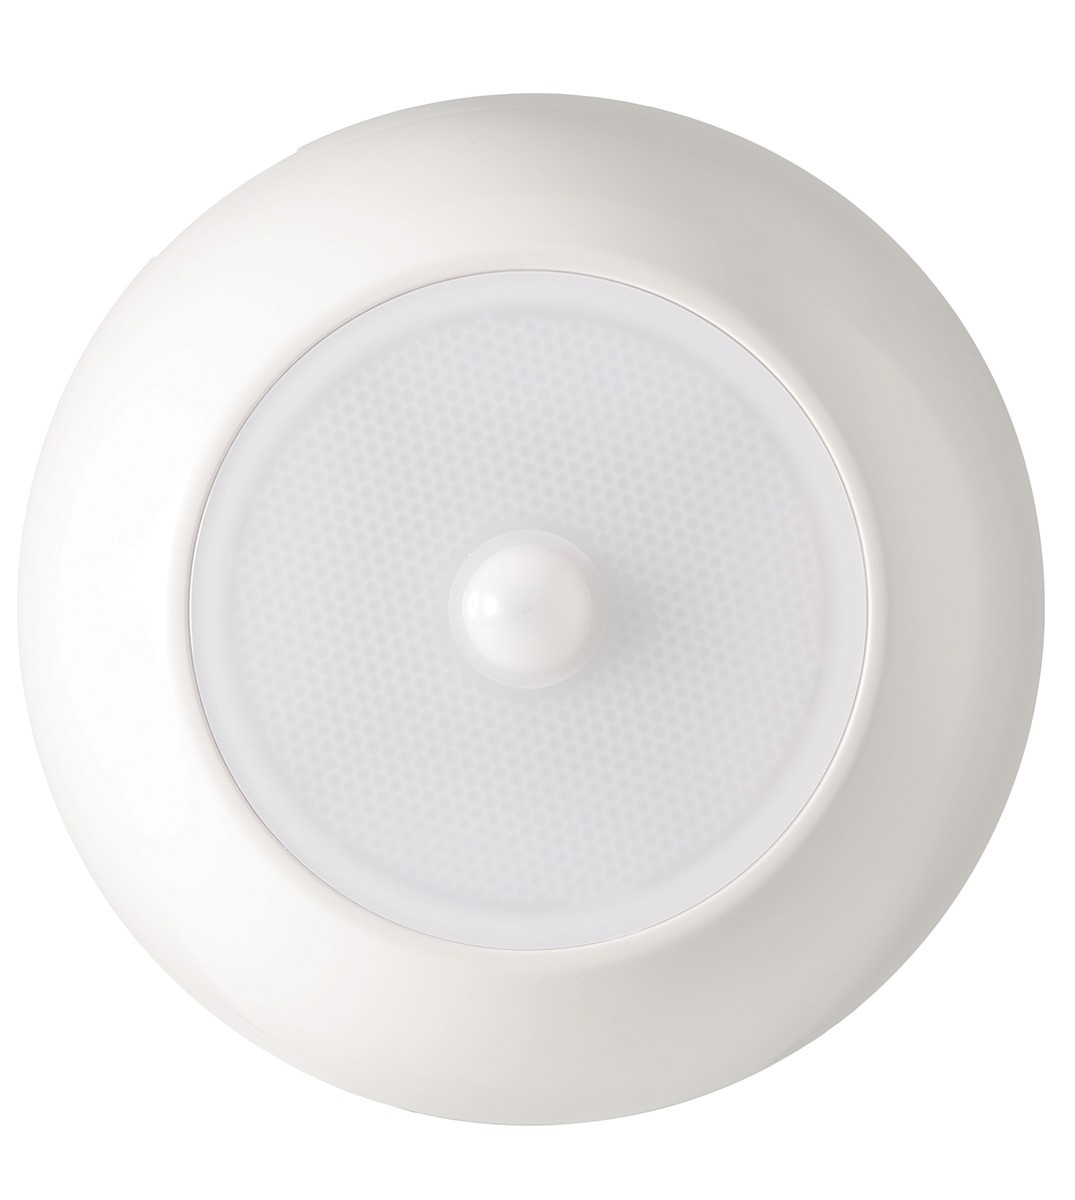 indoor-motion-sensor-ceiling-light-photo-8